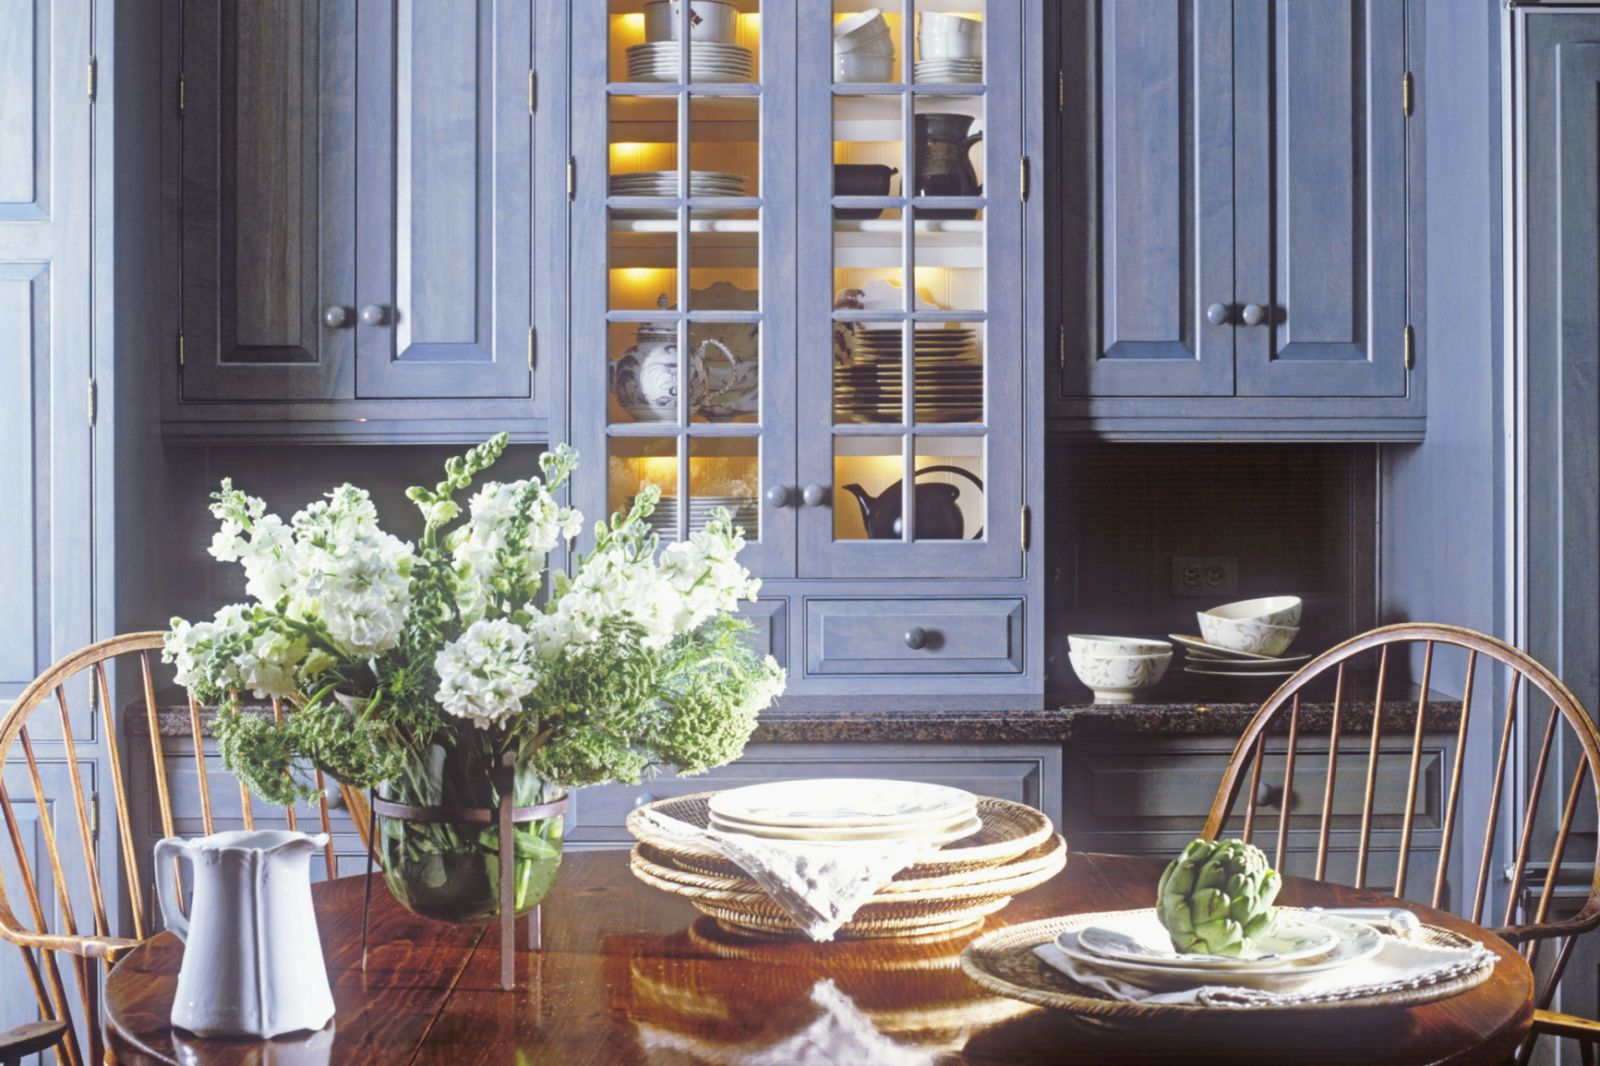 image & Mistakes You Make Painting Cabinets - DIY Painted Kitchen Cabinets